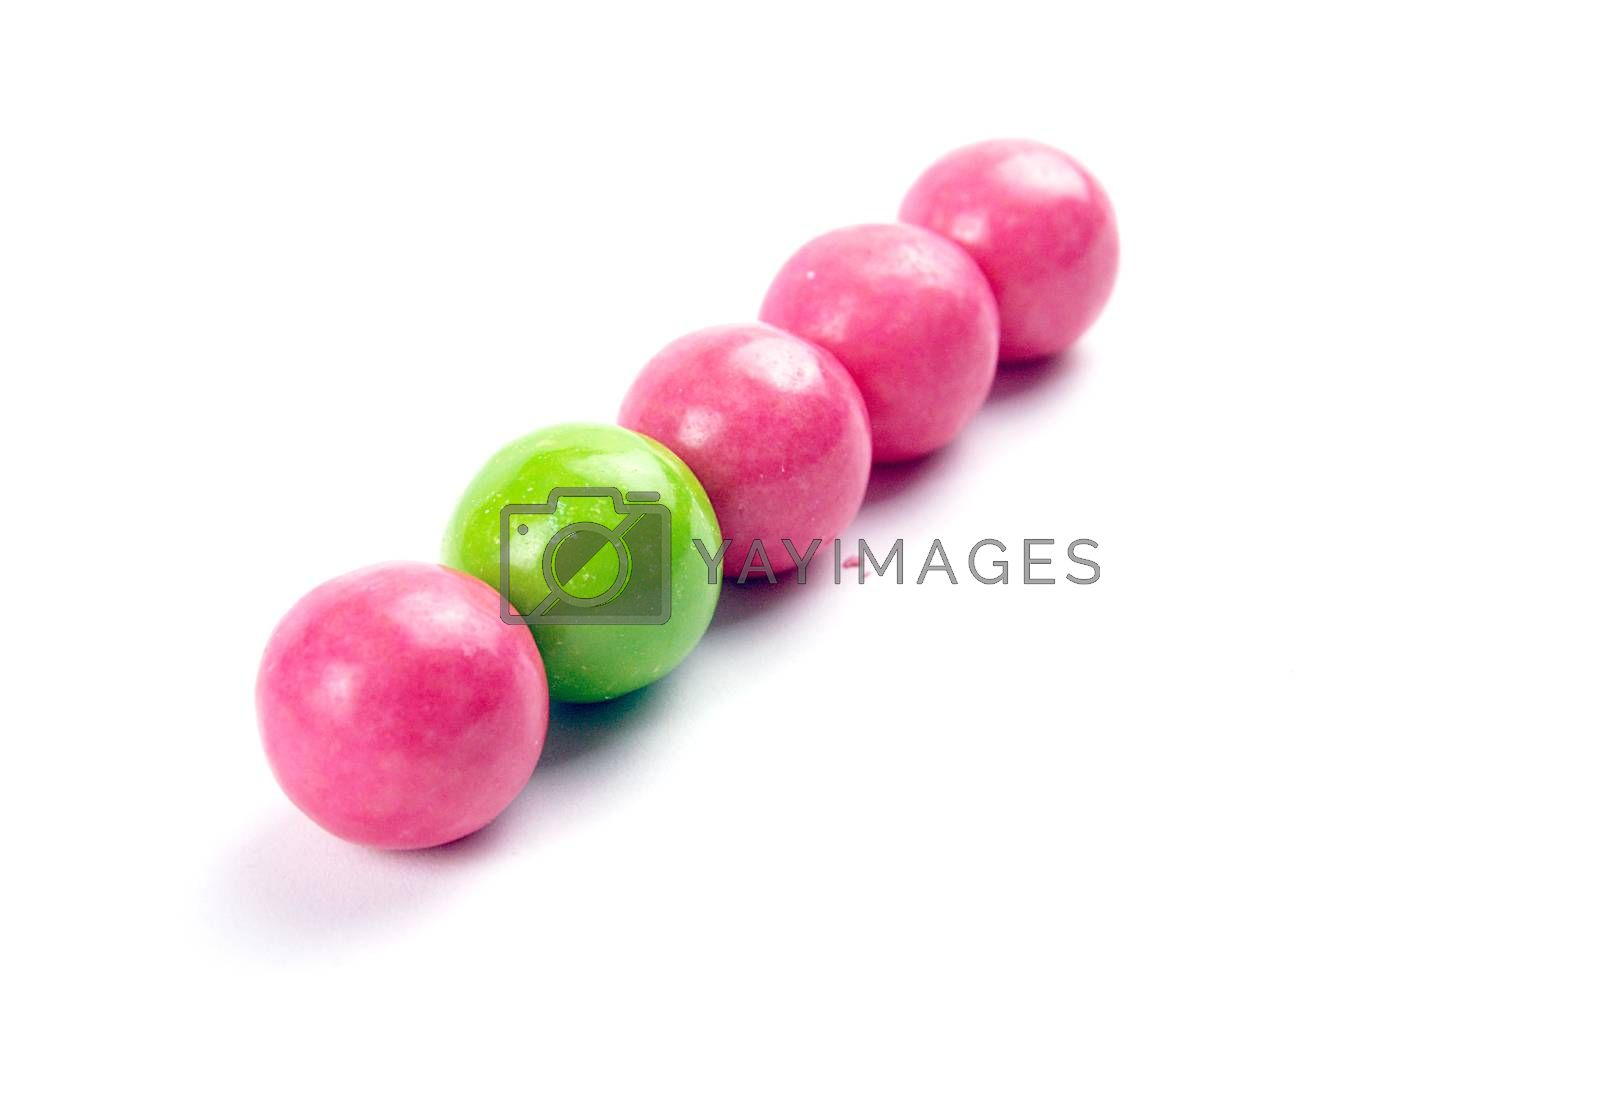 Royalty free image of A pile of colorful gumballs on a white background. by nehru